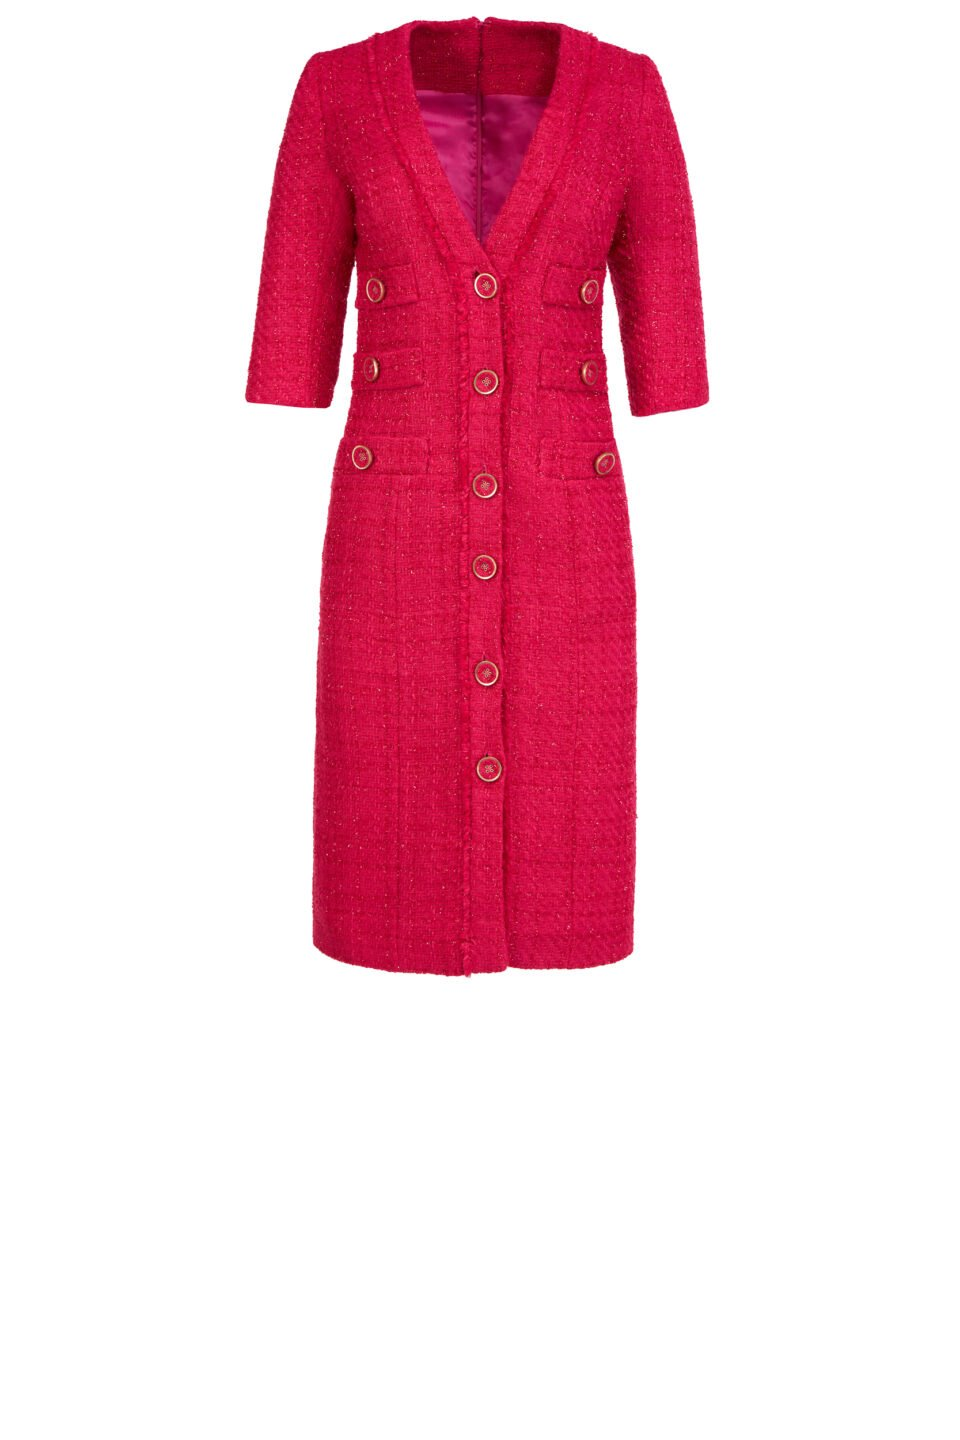 Emilia FW2112 Pink Tweed Button-Front Pencil Dress with Lurex Detail